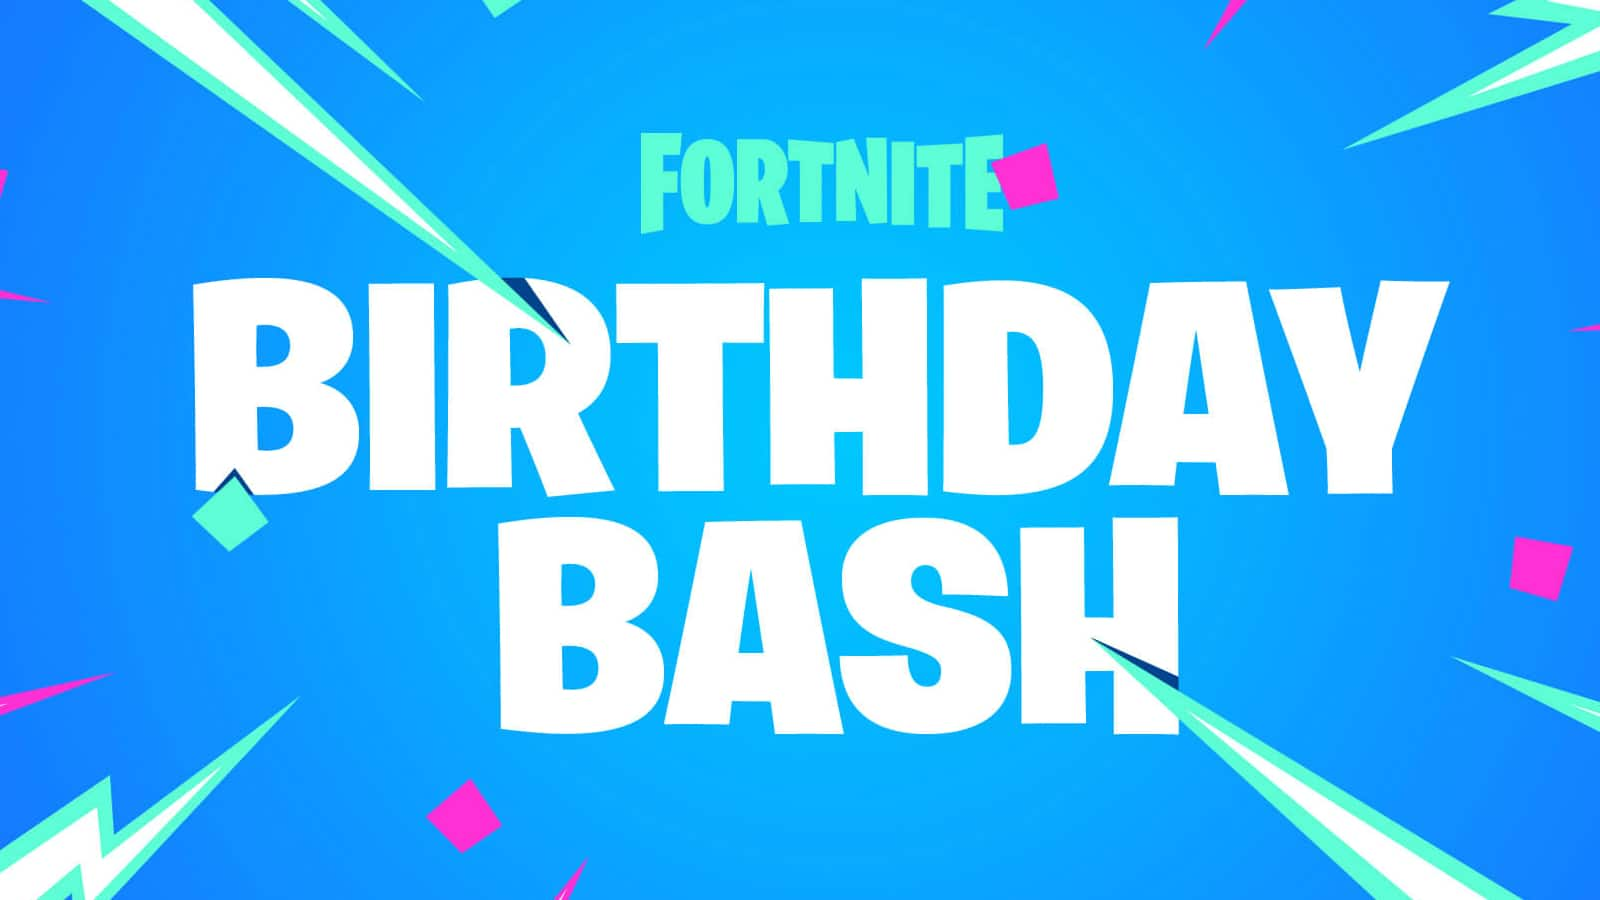 Fortnite Birthday Bash logo